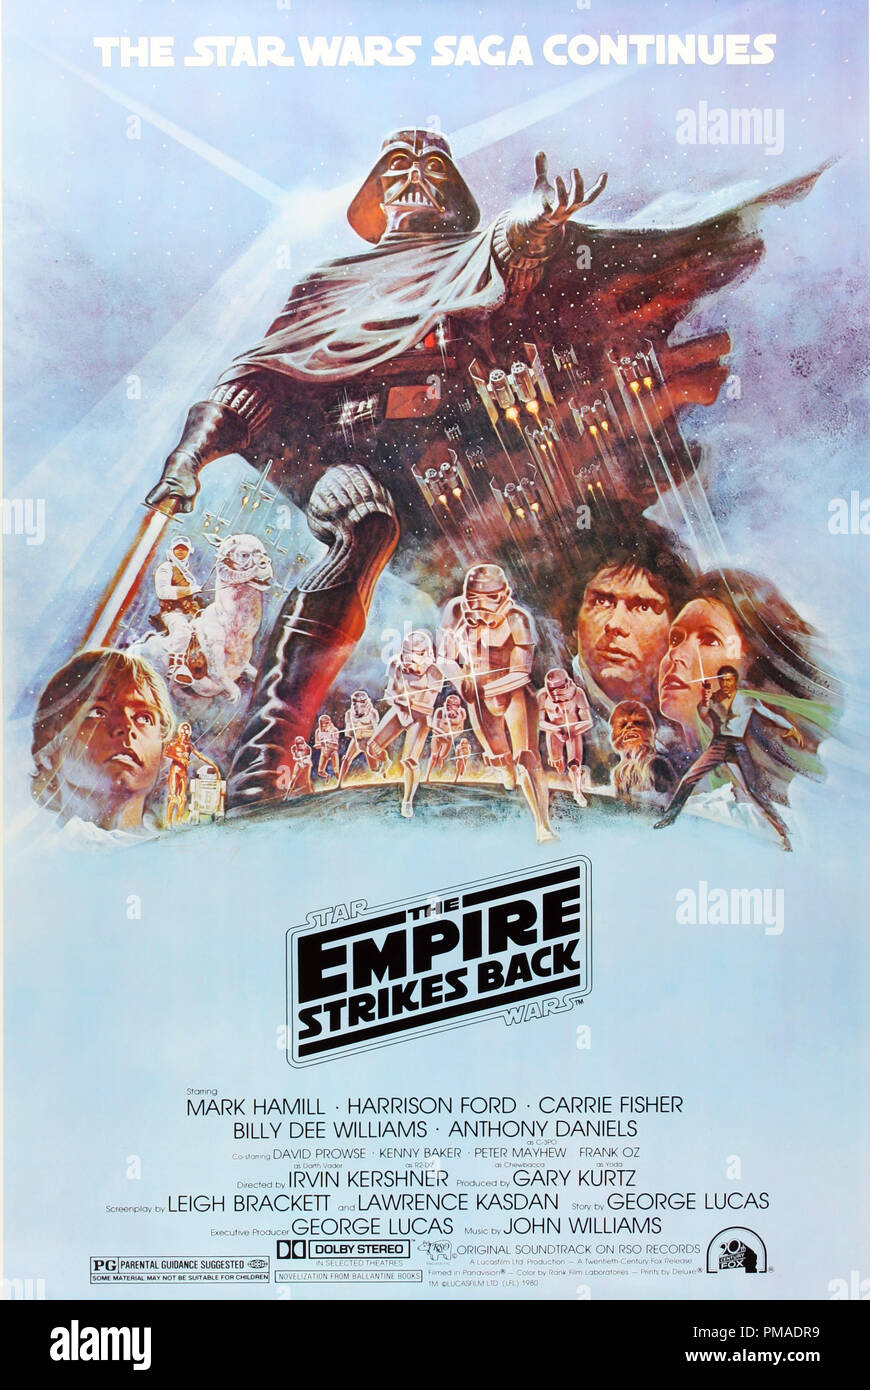 Star Wars: The Empire Strikes Back - US Poster 1980 20th Century Fox Harrison Ford, Mark Hamill, Carrie Fisher  File Reference # 32509_335THA - Stock Image